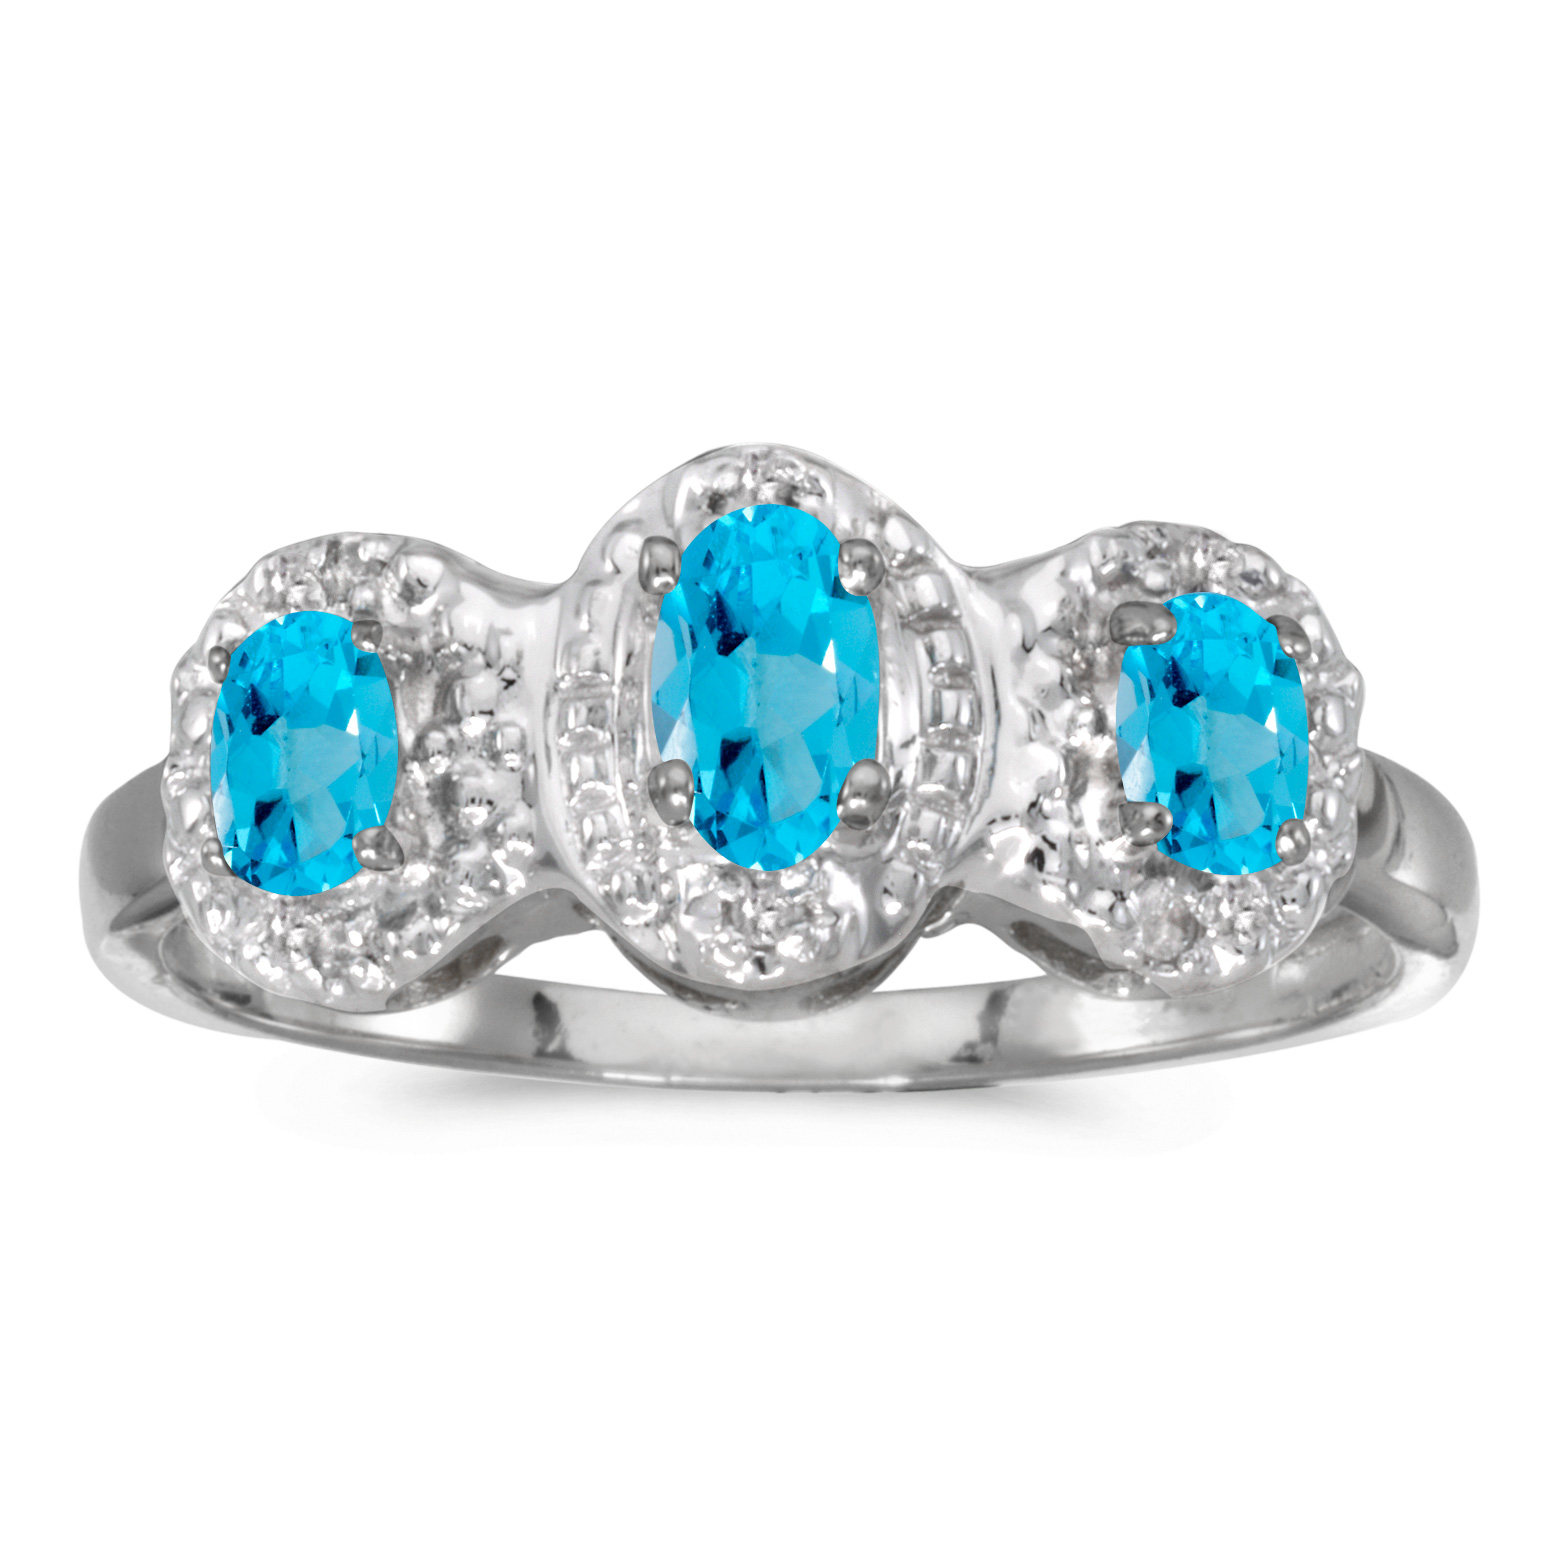 10k White Gold Oval Blue Topaz And Diamond Three Stone Ring by